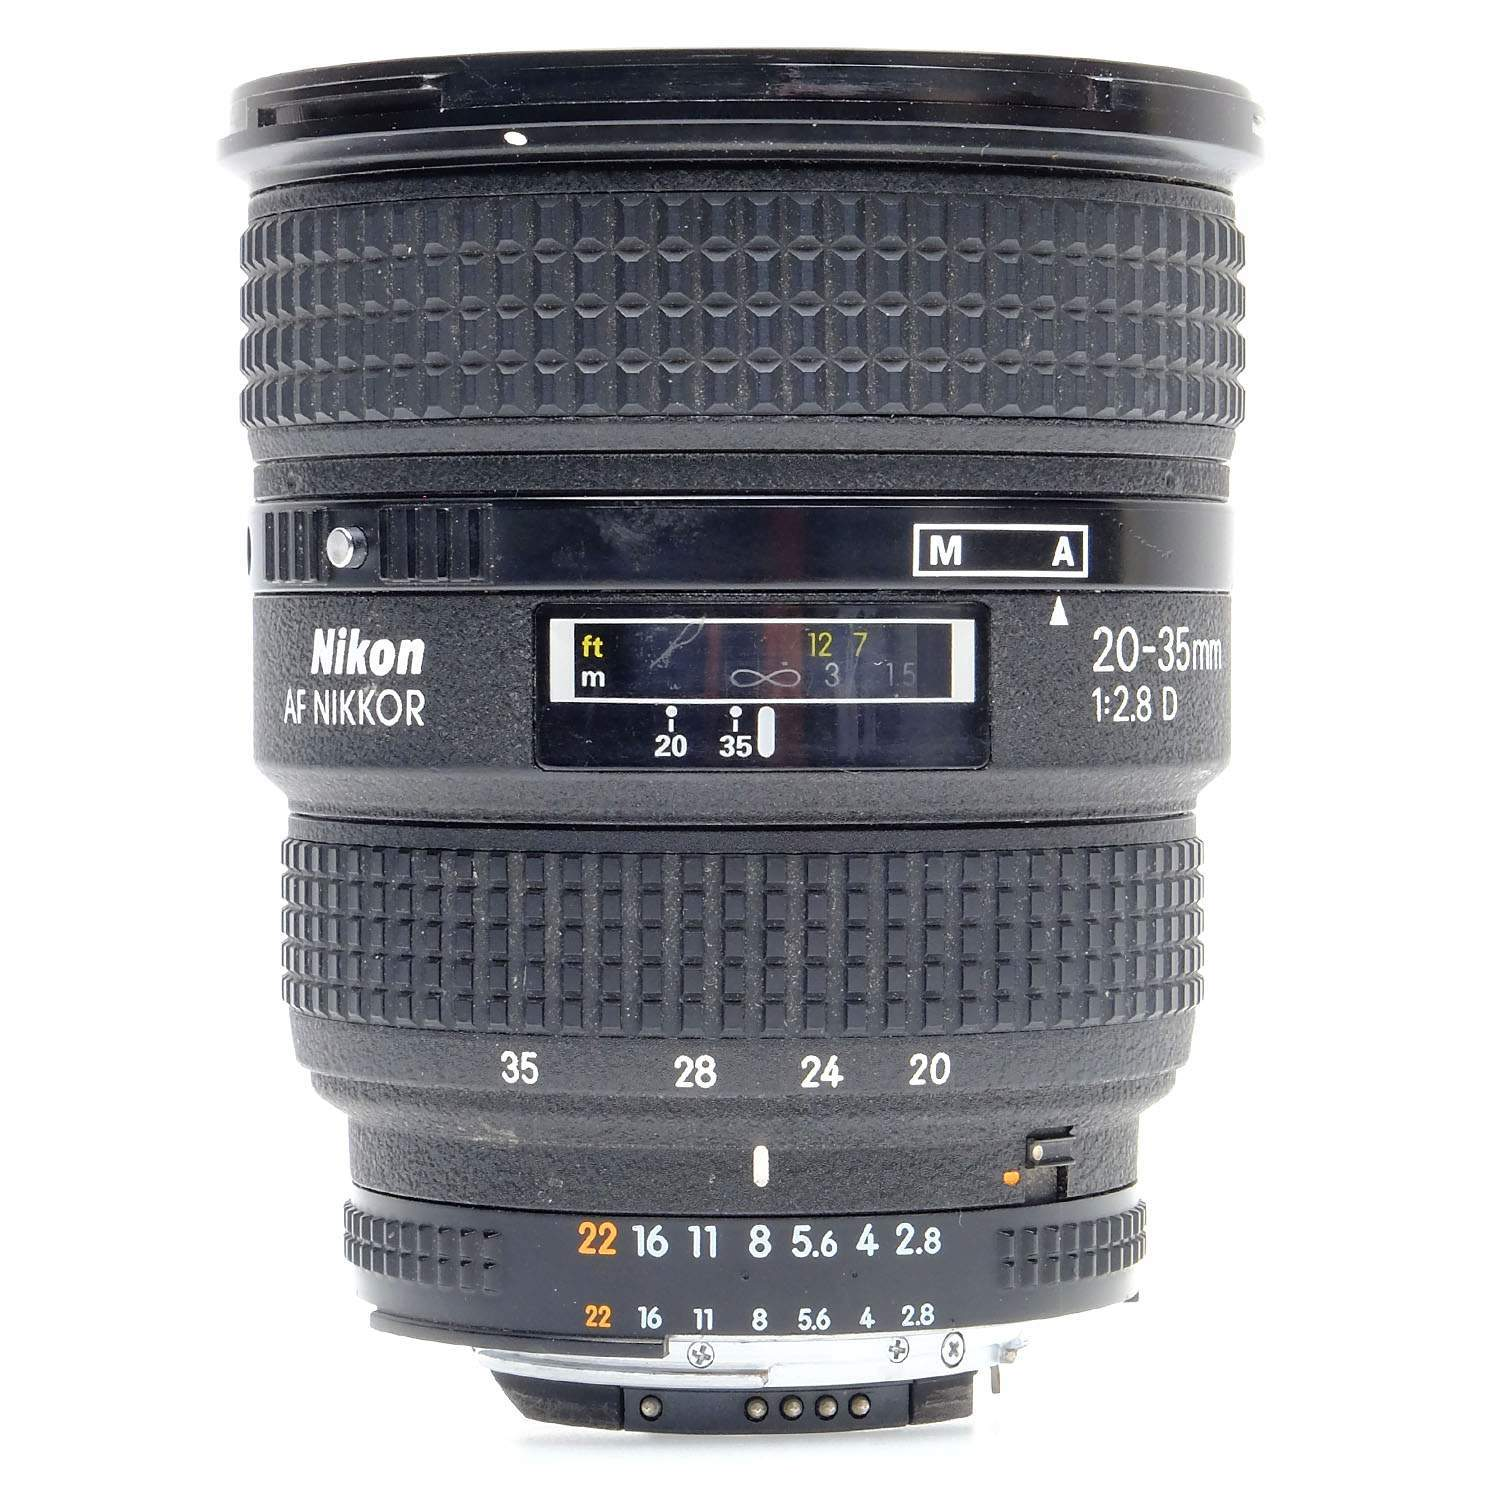 83 20 35mm Nikon F 28 Review Una 07 1650 4 236476 Af 28mm F28d F28 D 211640